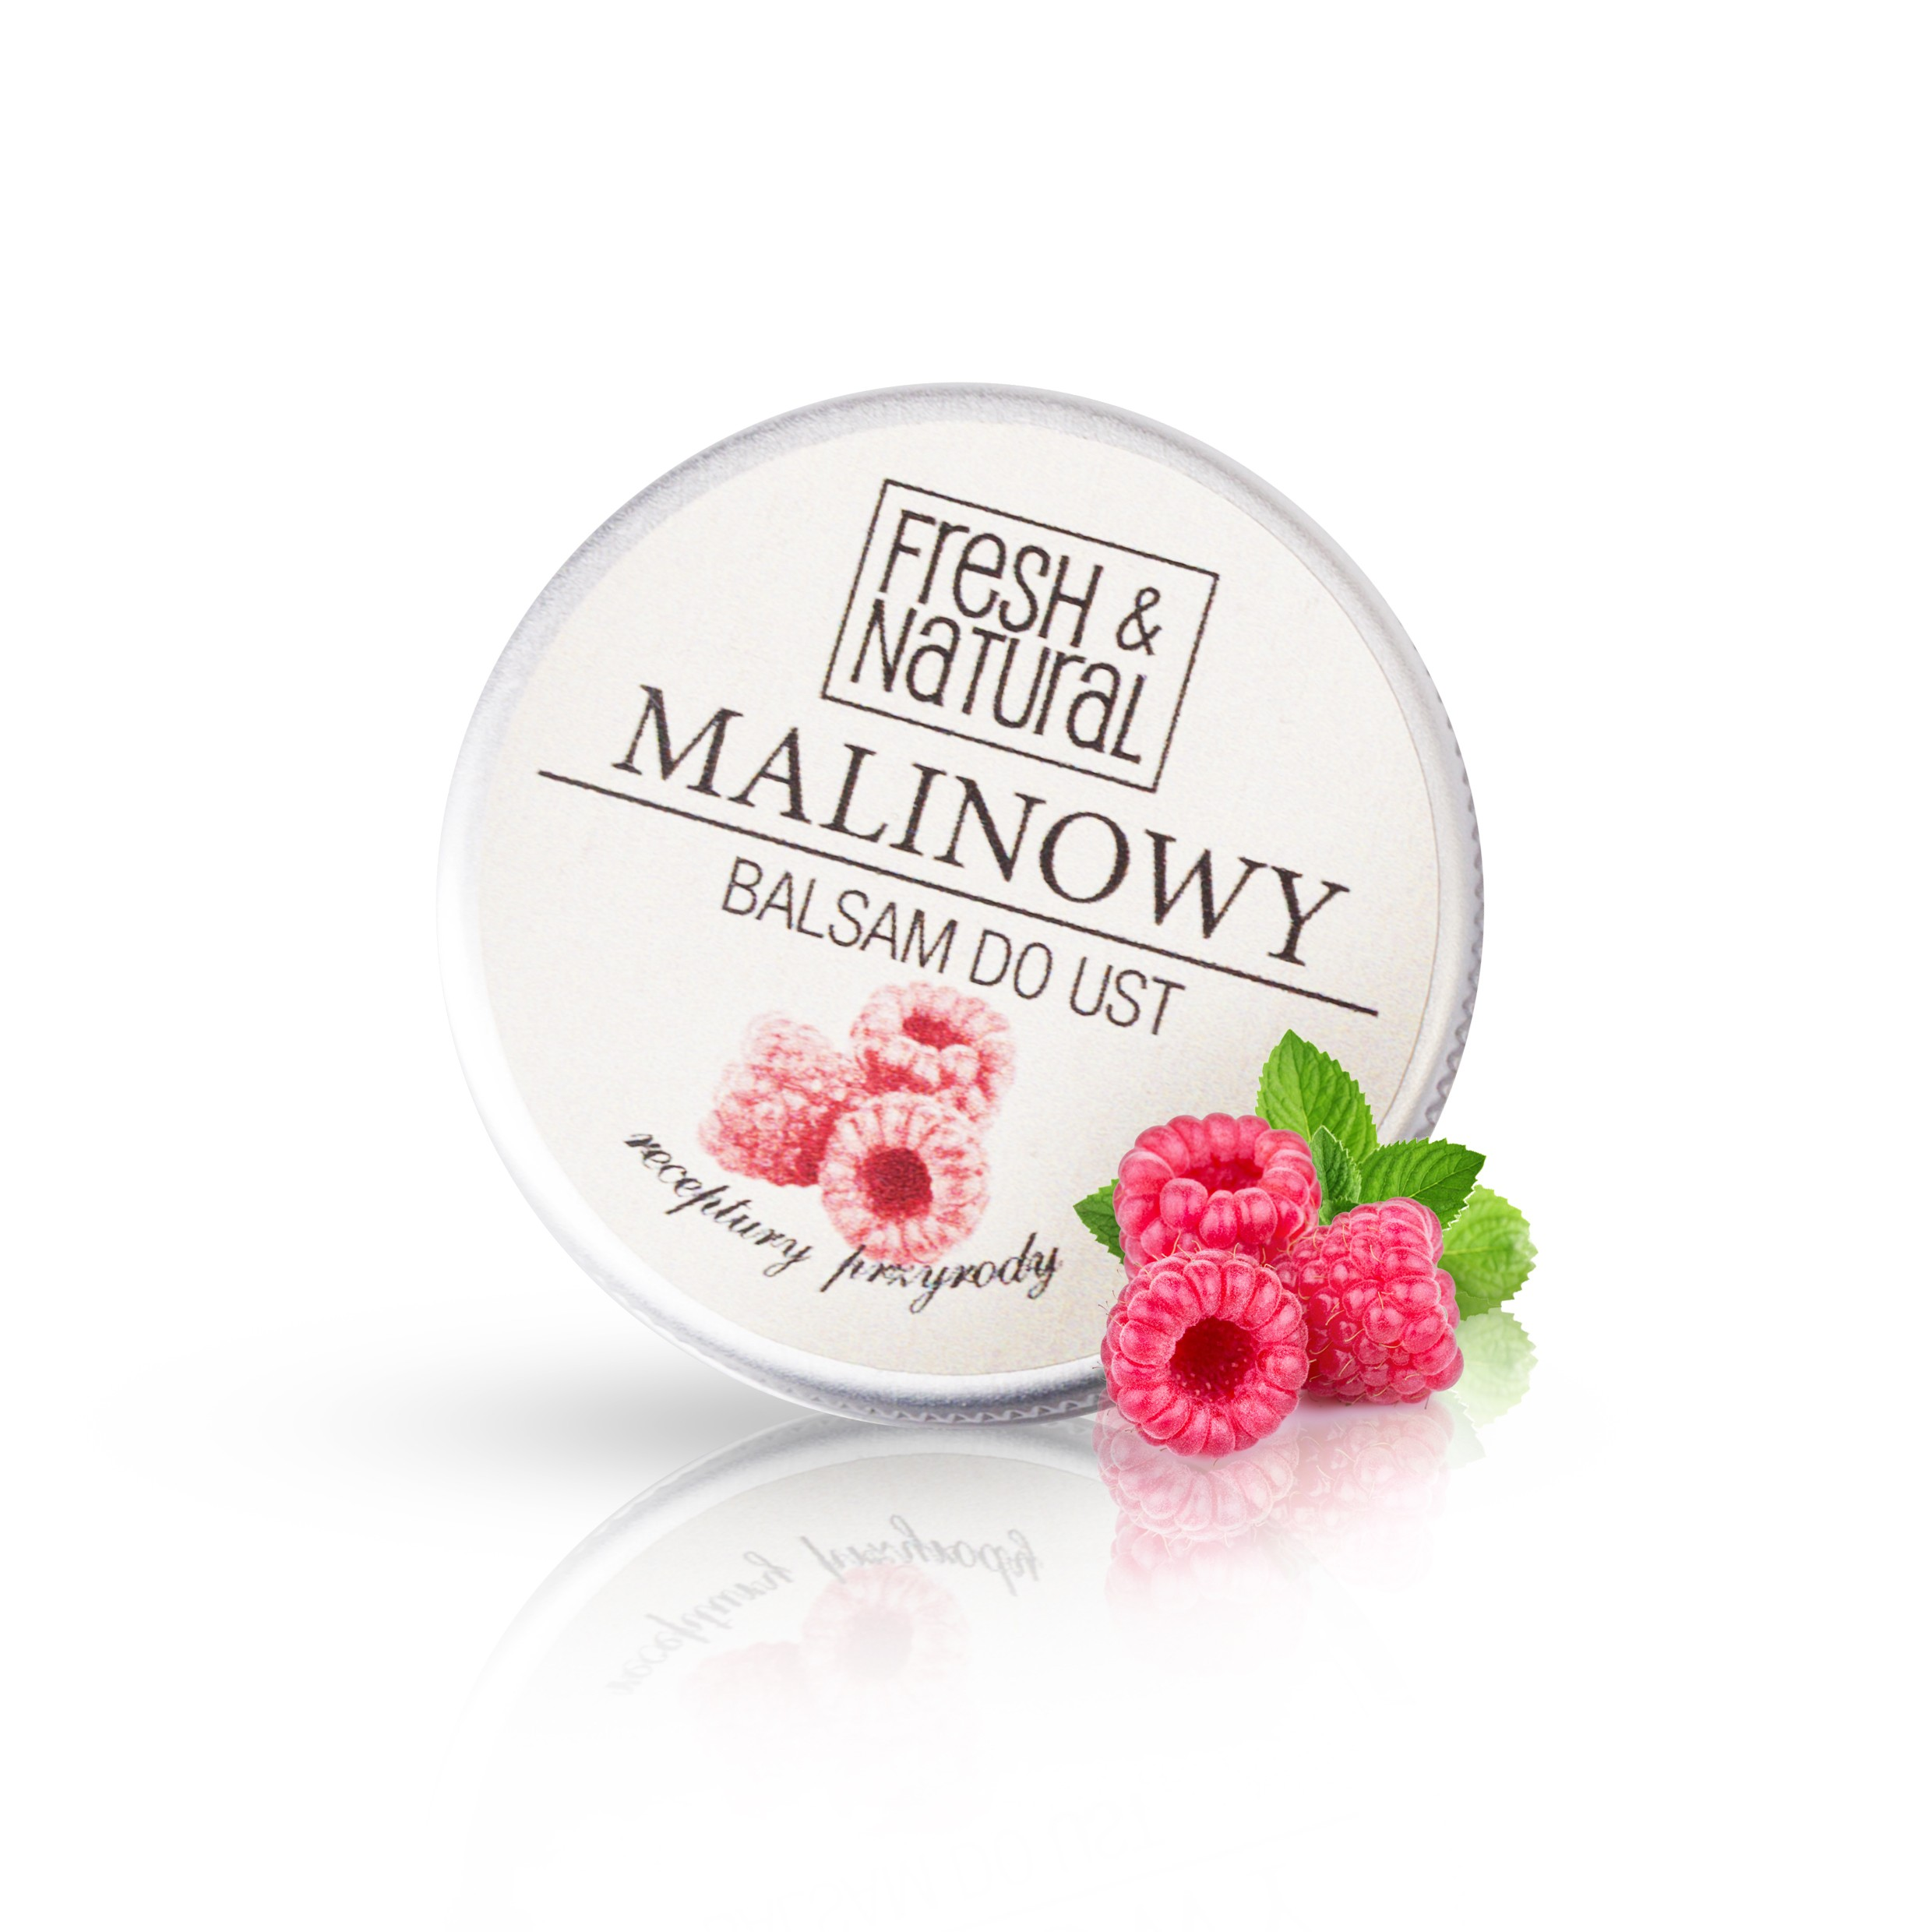 MALINOWY balsam do ust 15 ml